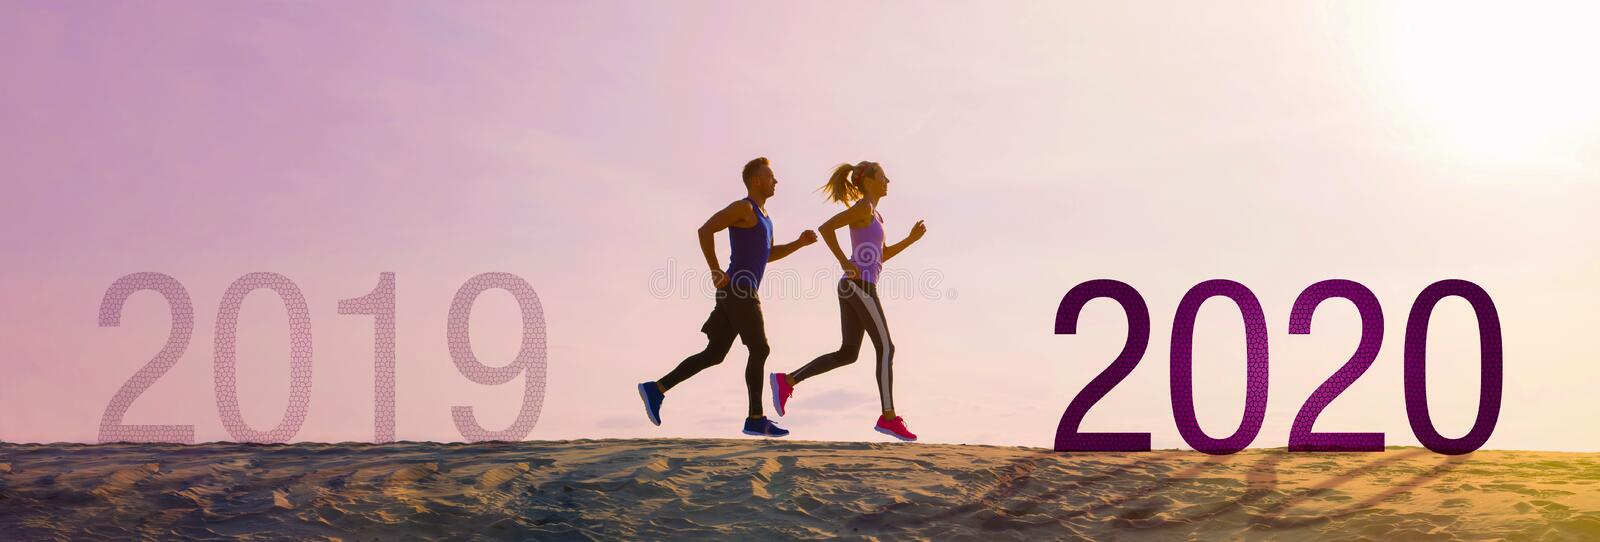 Man and woman running together towards next year stock image